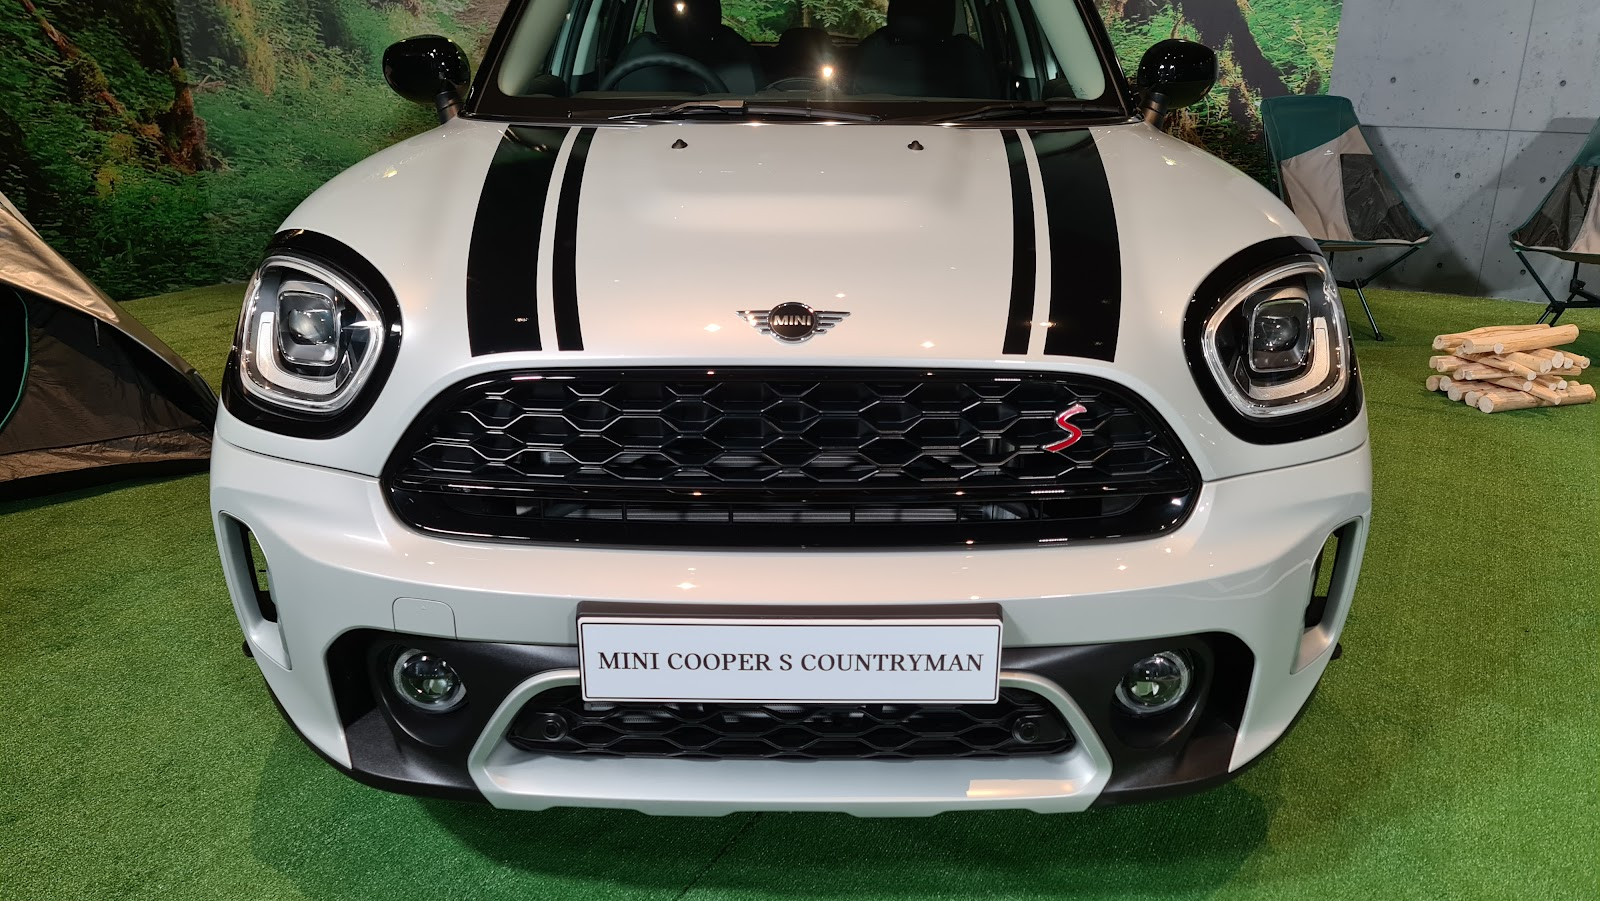 2021 MINI Cooper S Countryman Front View